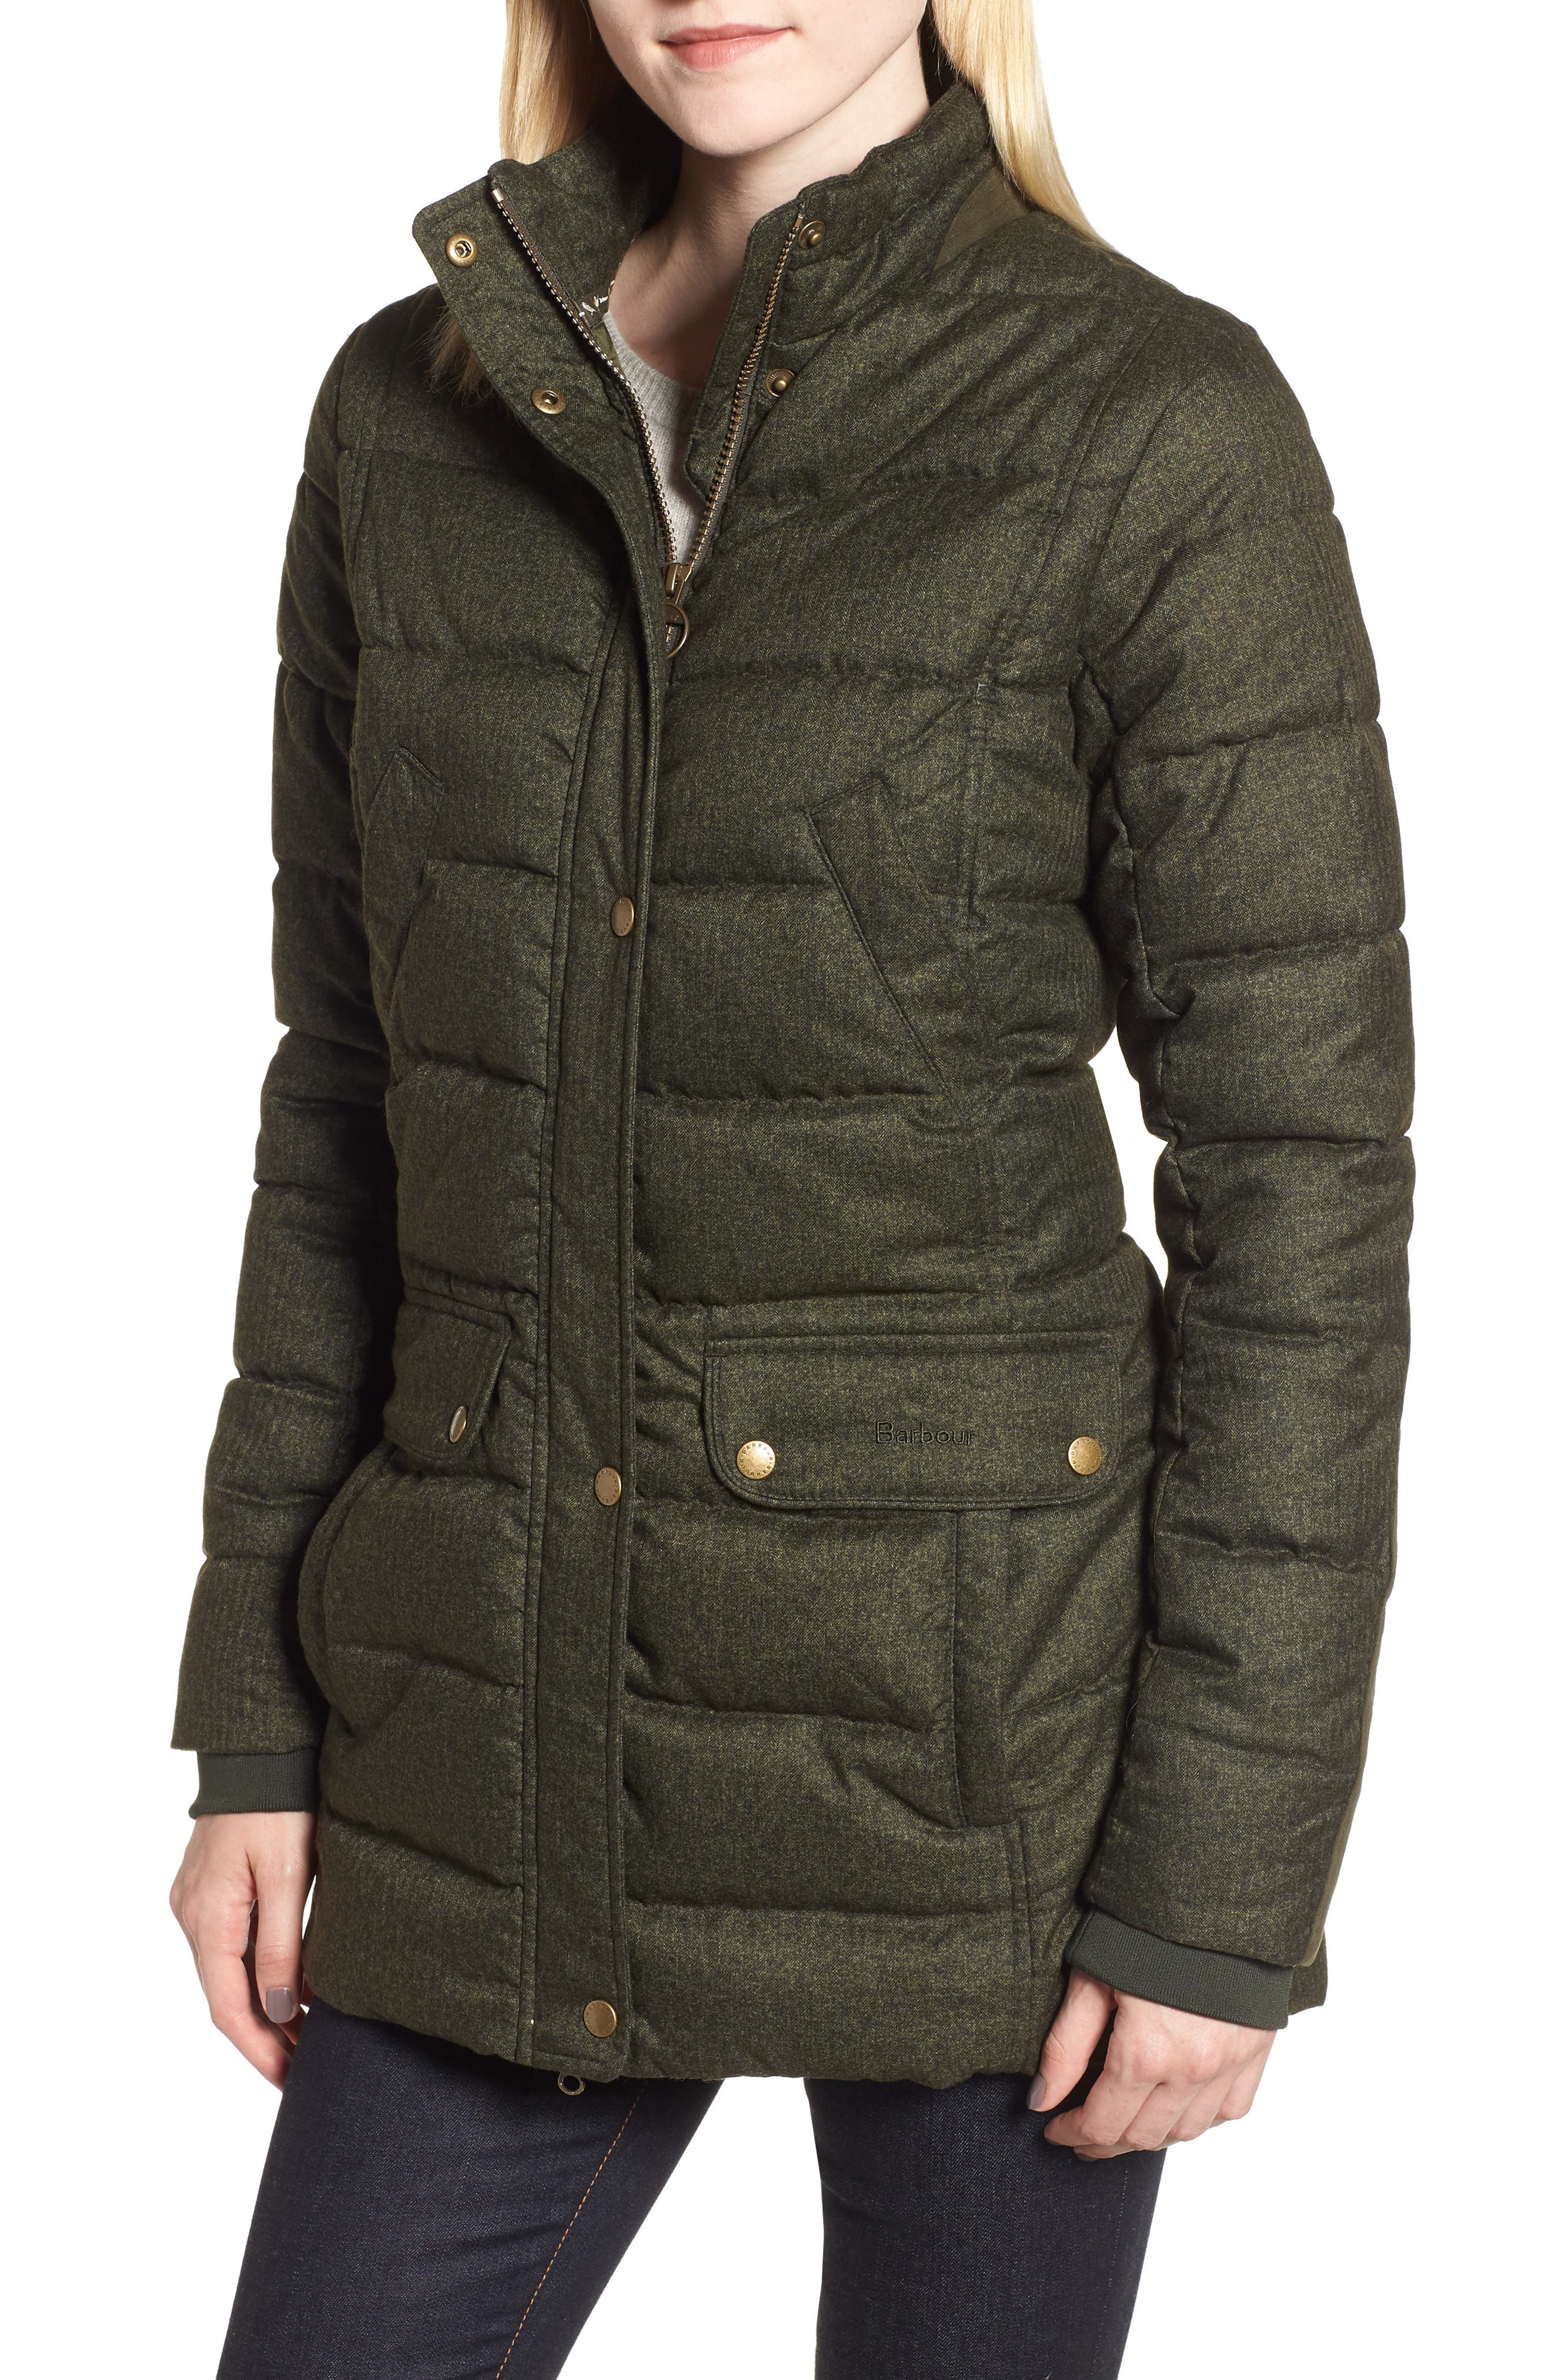 BARBOUR, Goldfinch Quilted Jacket, Main thumbnail 1, color, 400